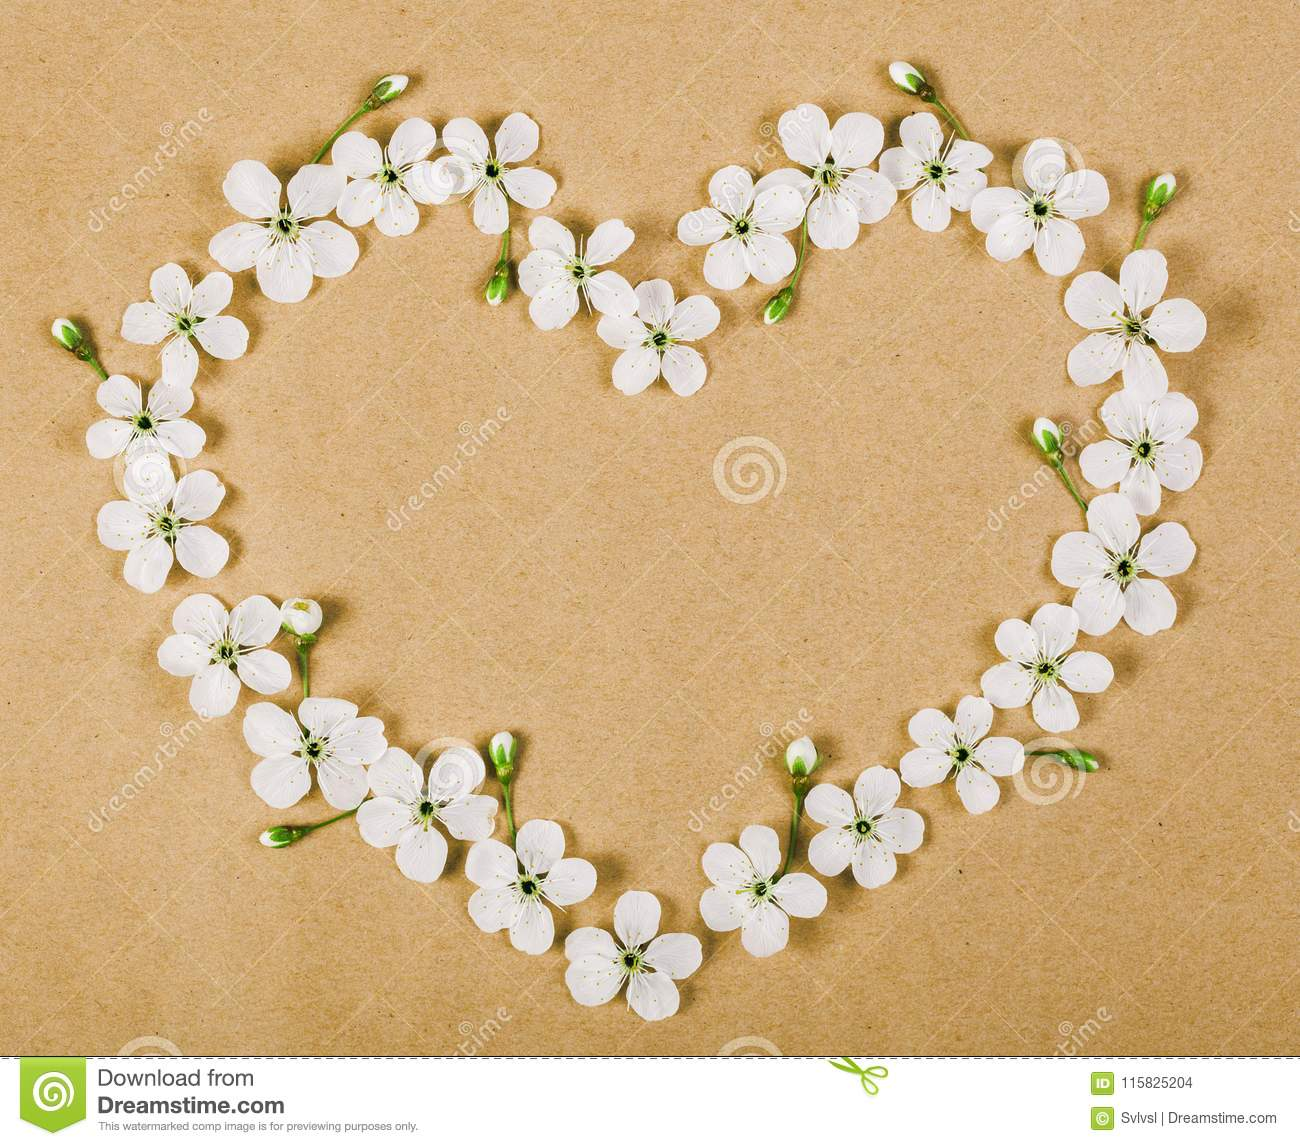 Heart Symbol Made Of White Spring Flowers And Buds On Brown Paper